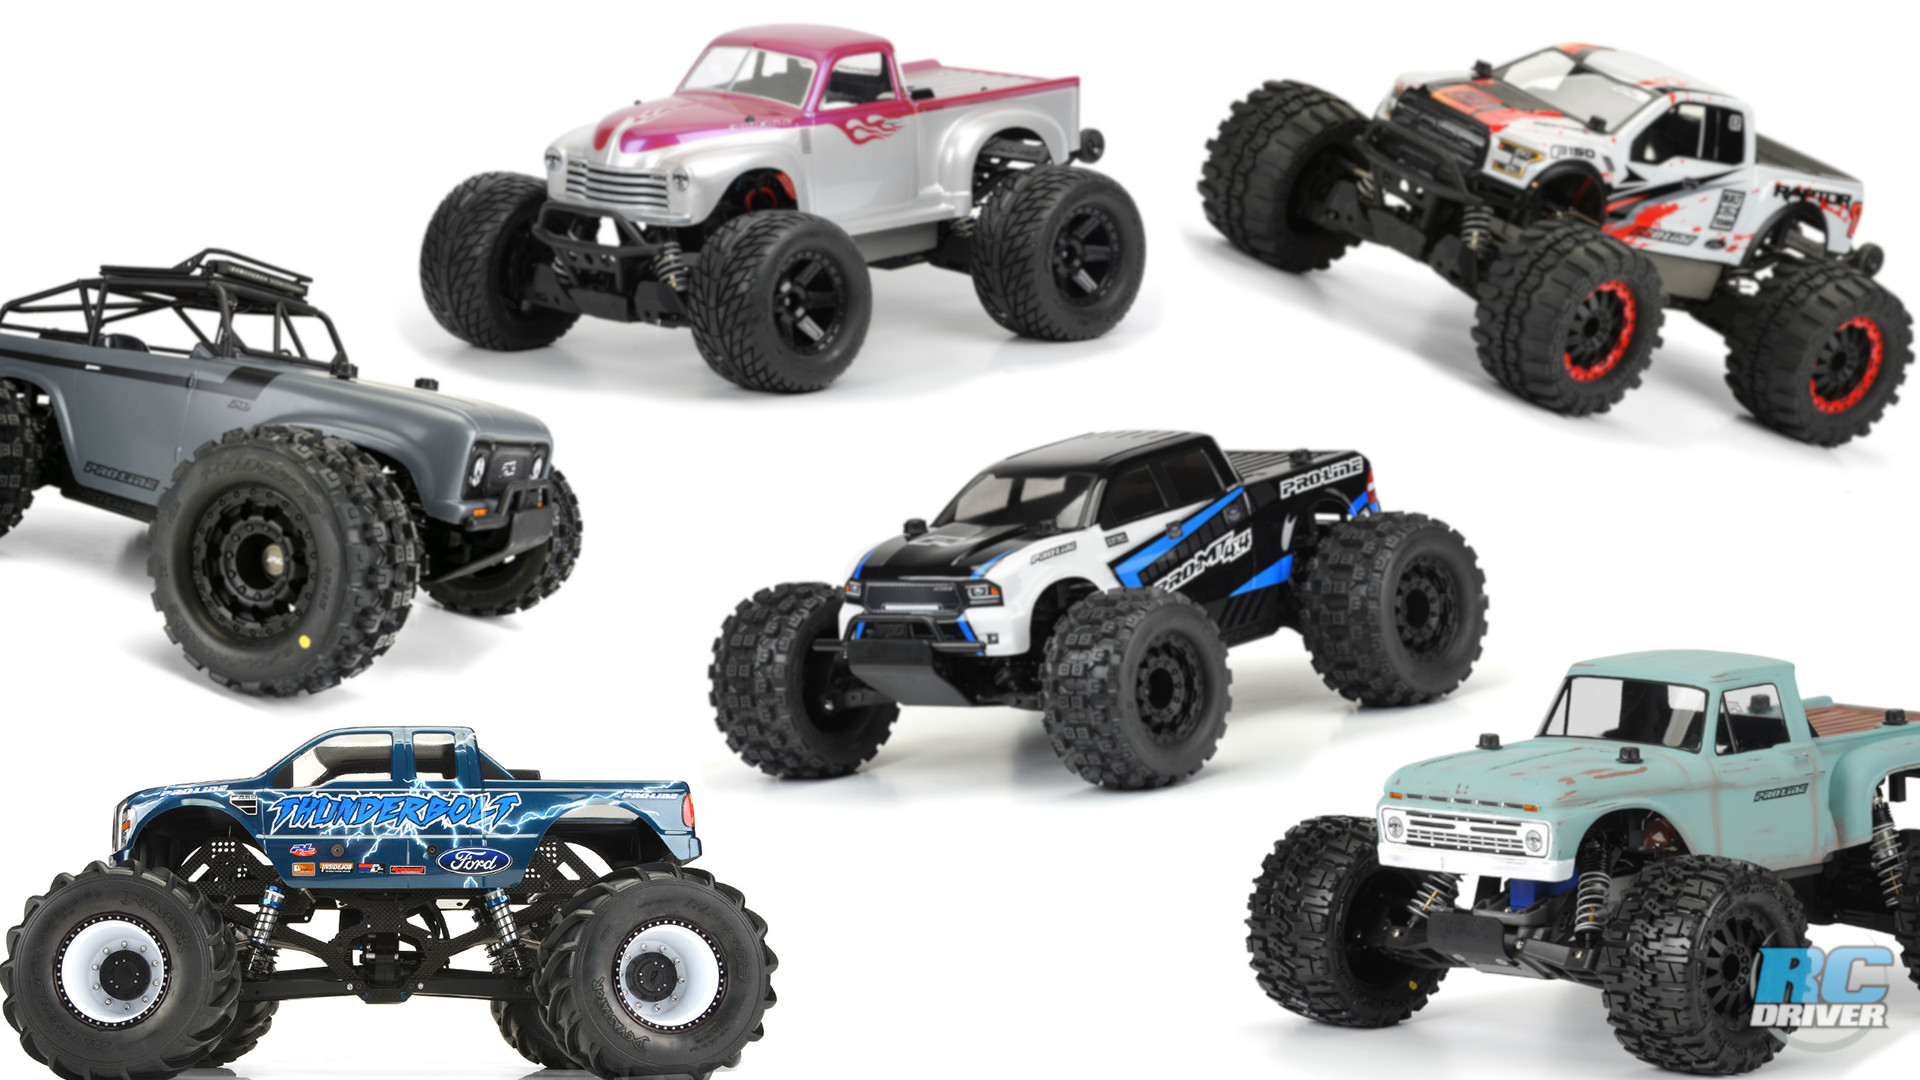 Pro-Line Monster Truck Bodies for 1/10-scale rigs